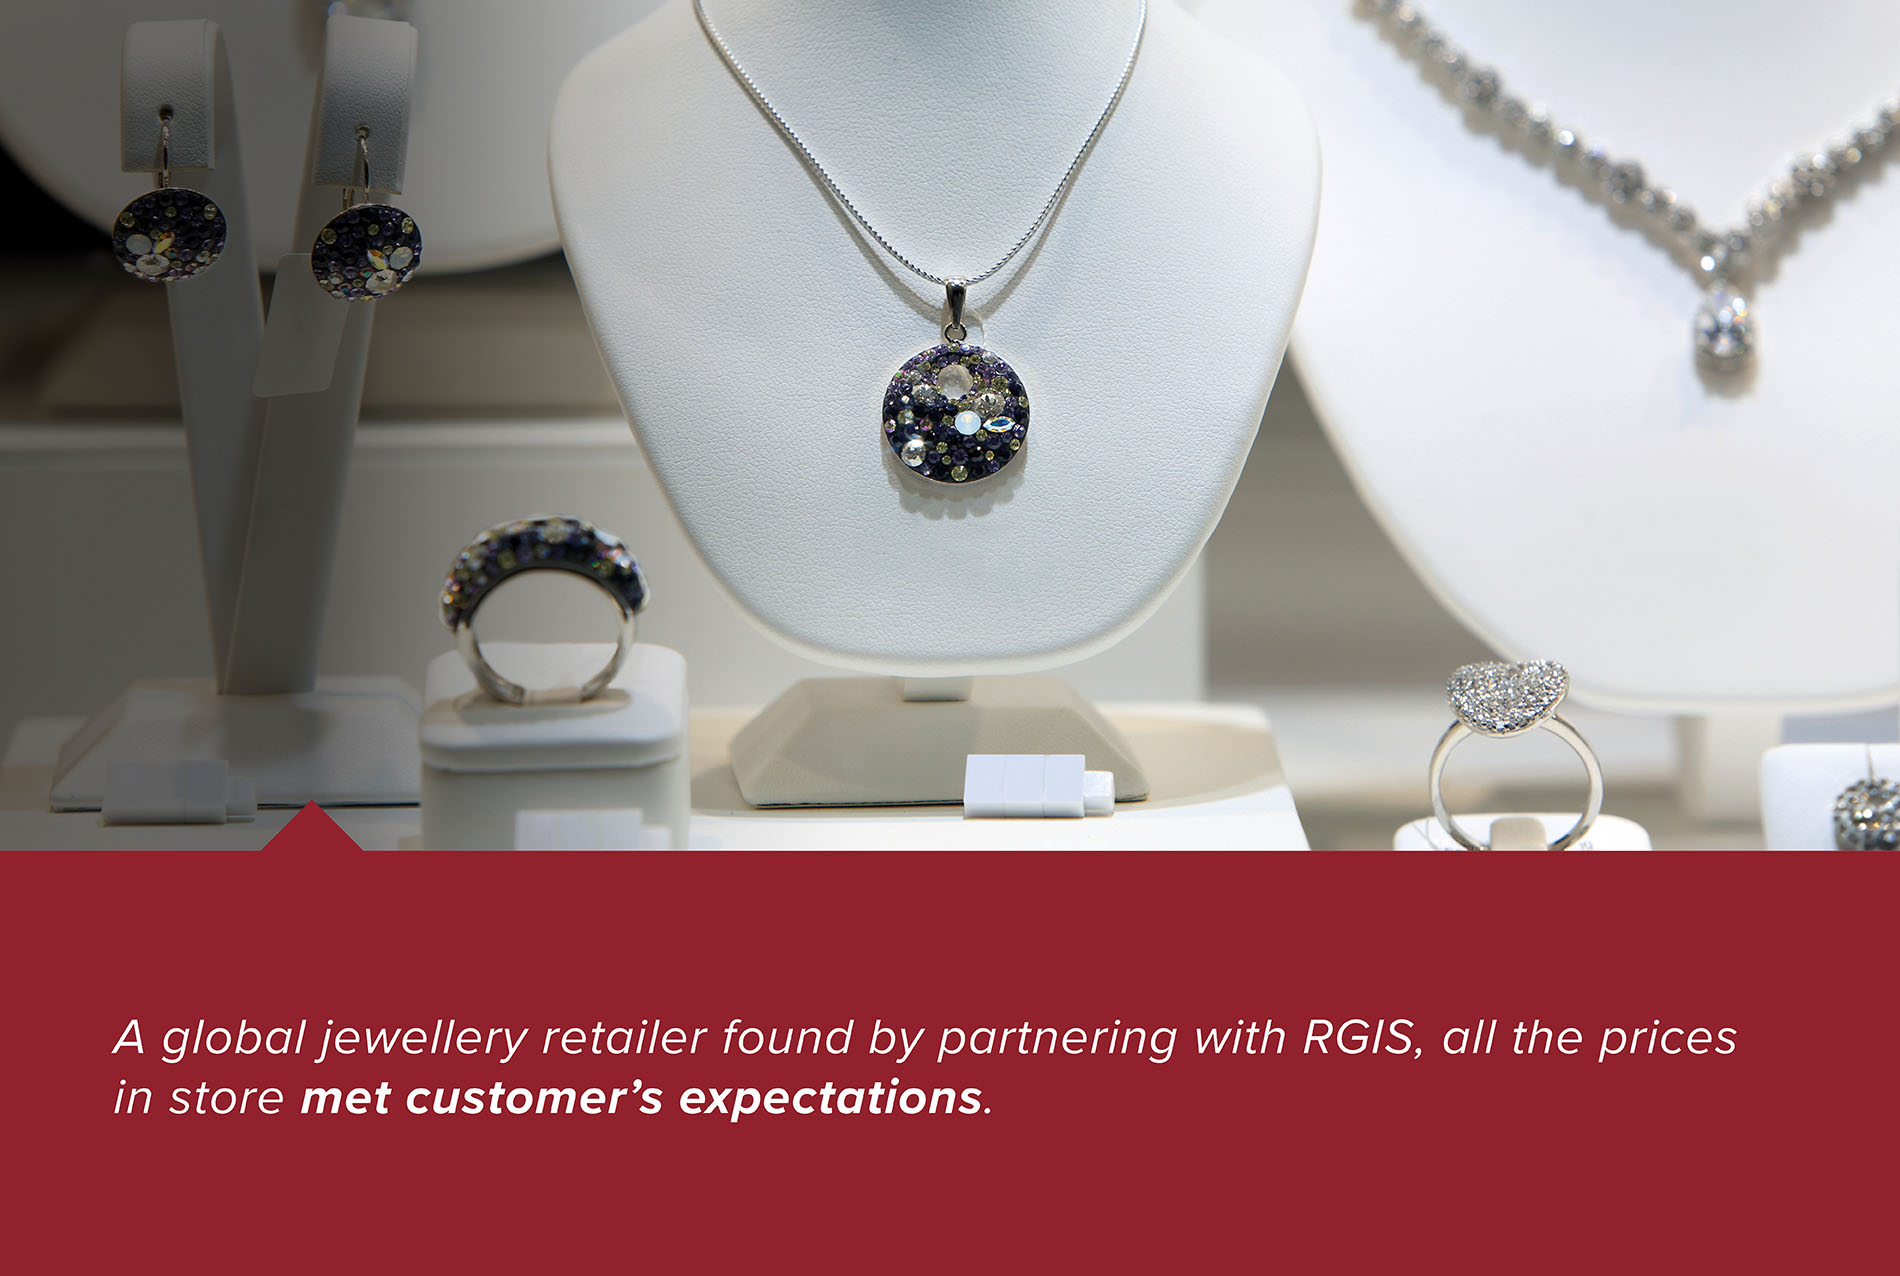 RGIS case study of a jewellery retailer auding stock and pricing